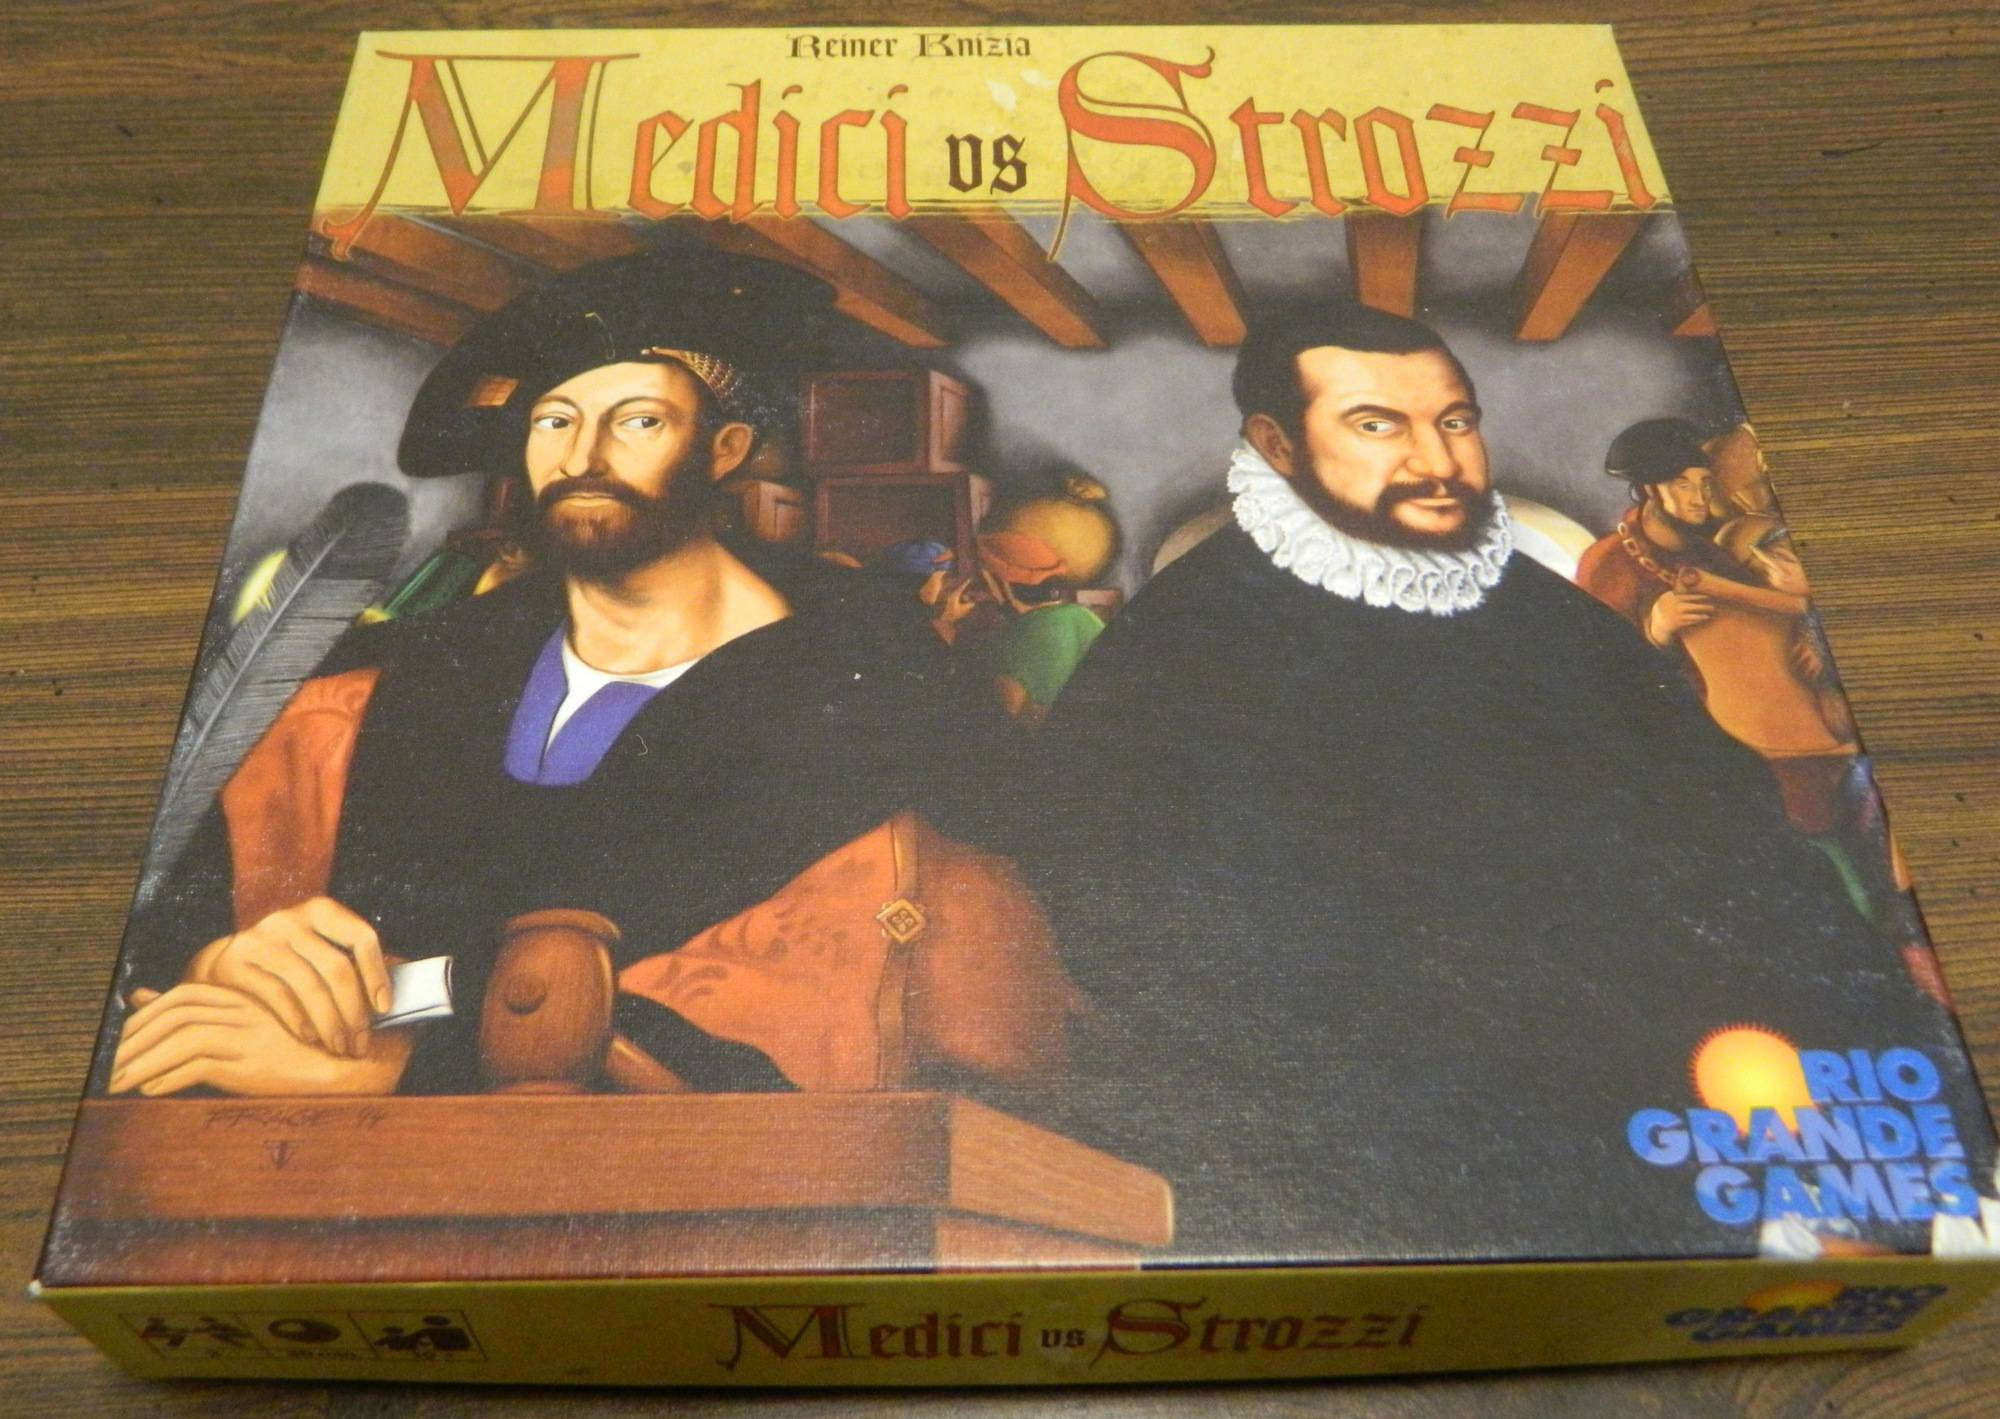 Box for Medici vs Strozzi